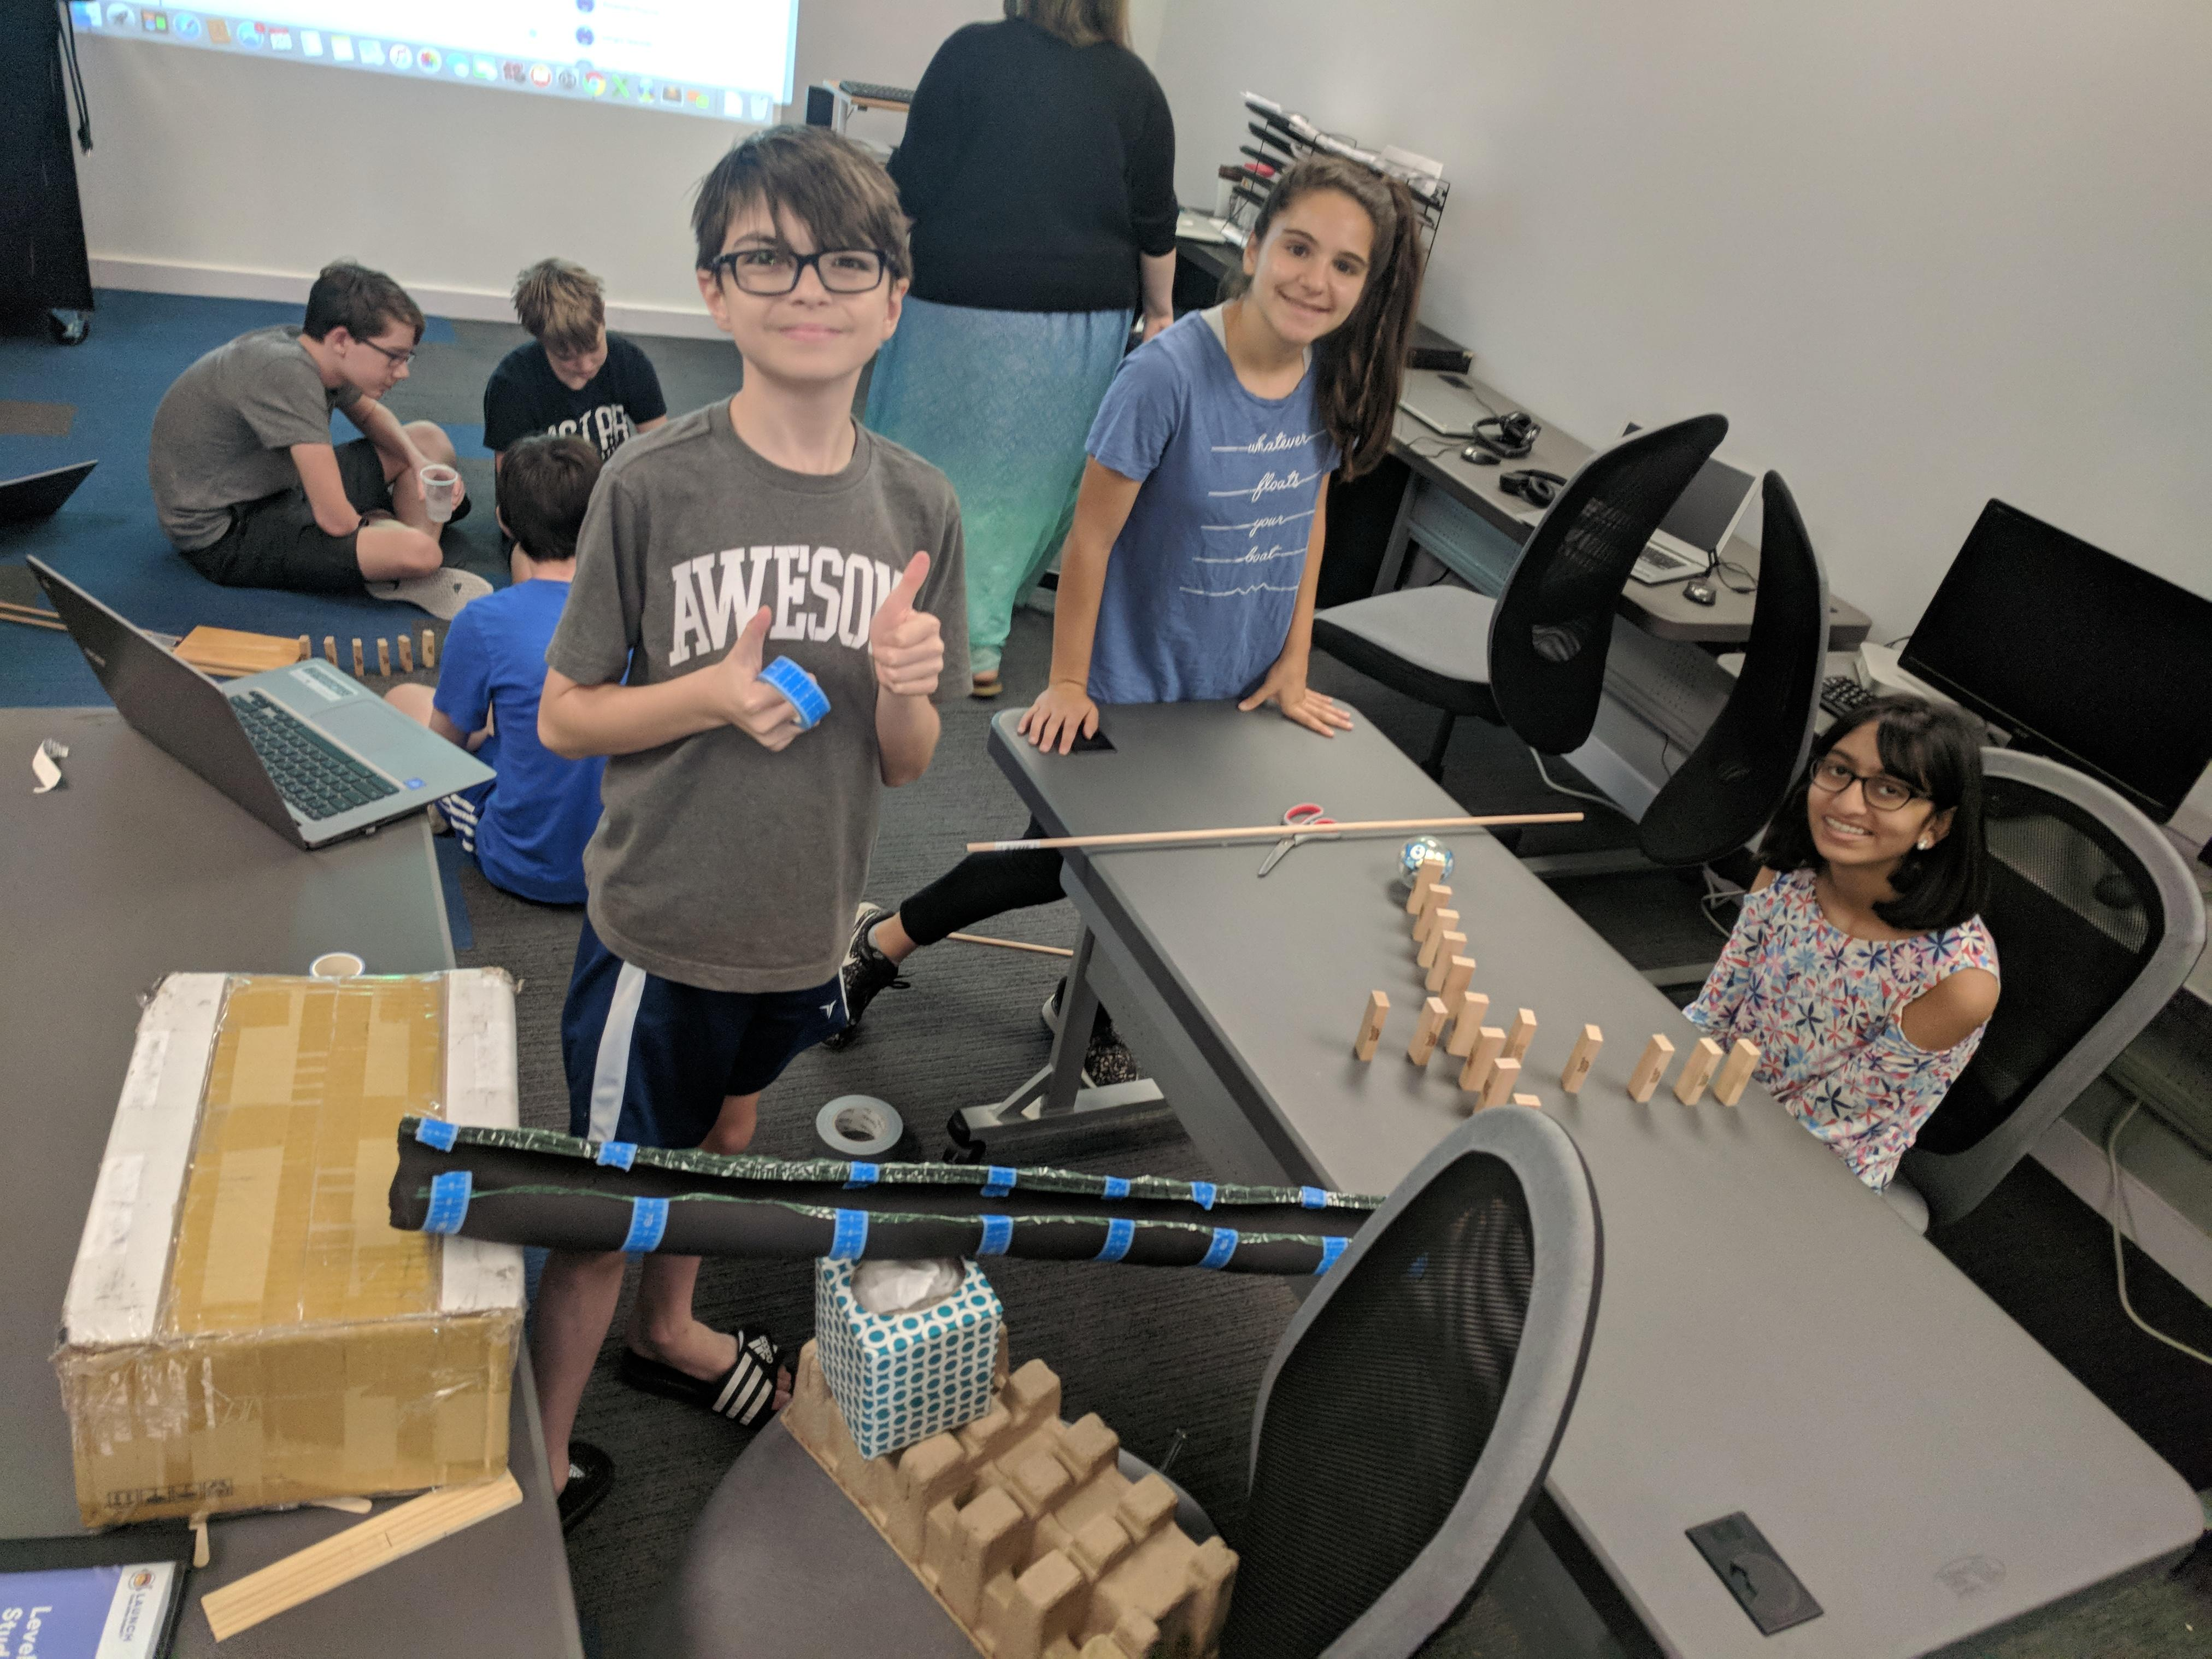 Launch Code After School image 10